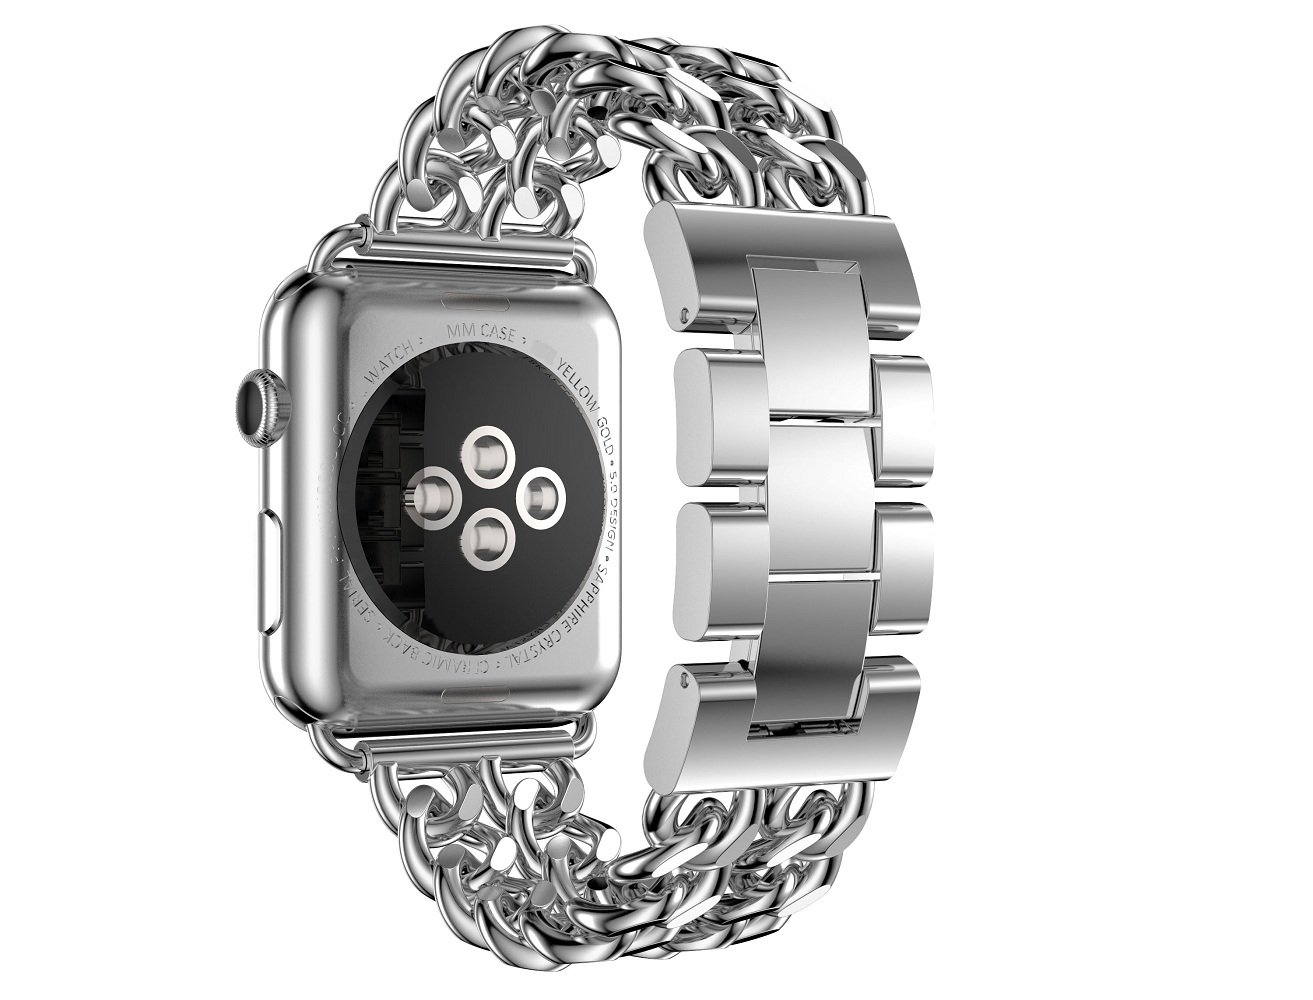 Juzzhou Band For Apple Watch iWatch Sport Edition Replacement Stainless Steel Wriststrap Bracelet Watchband Wristband Wrist Strap Bands With Metal Adapter Buckle For Woman Girl Man Boy Silver 38mm by Juzzhou (Image #2)